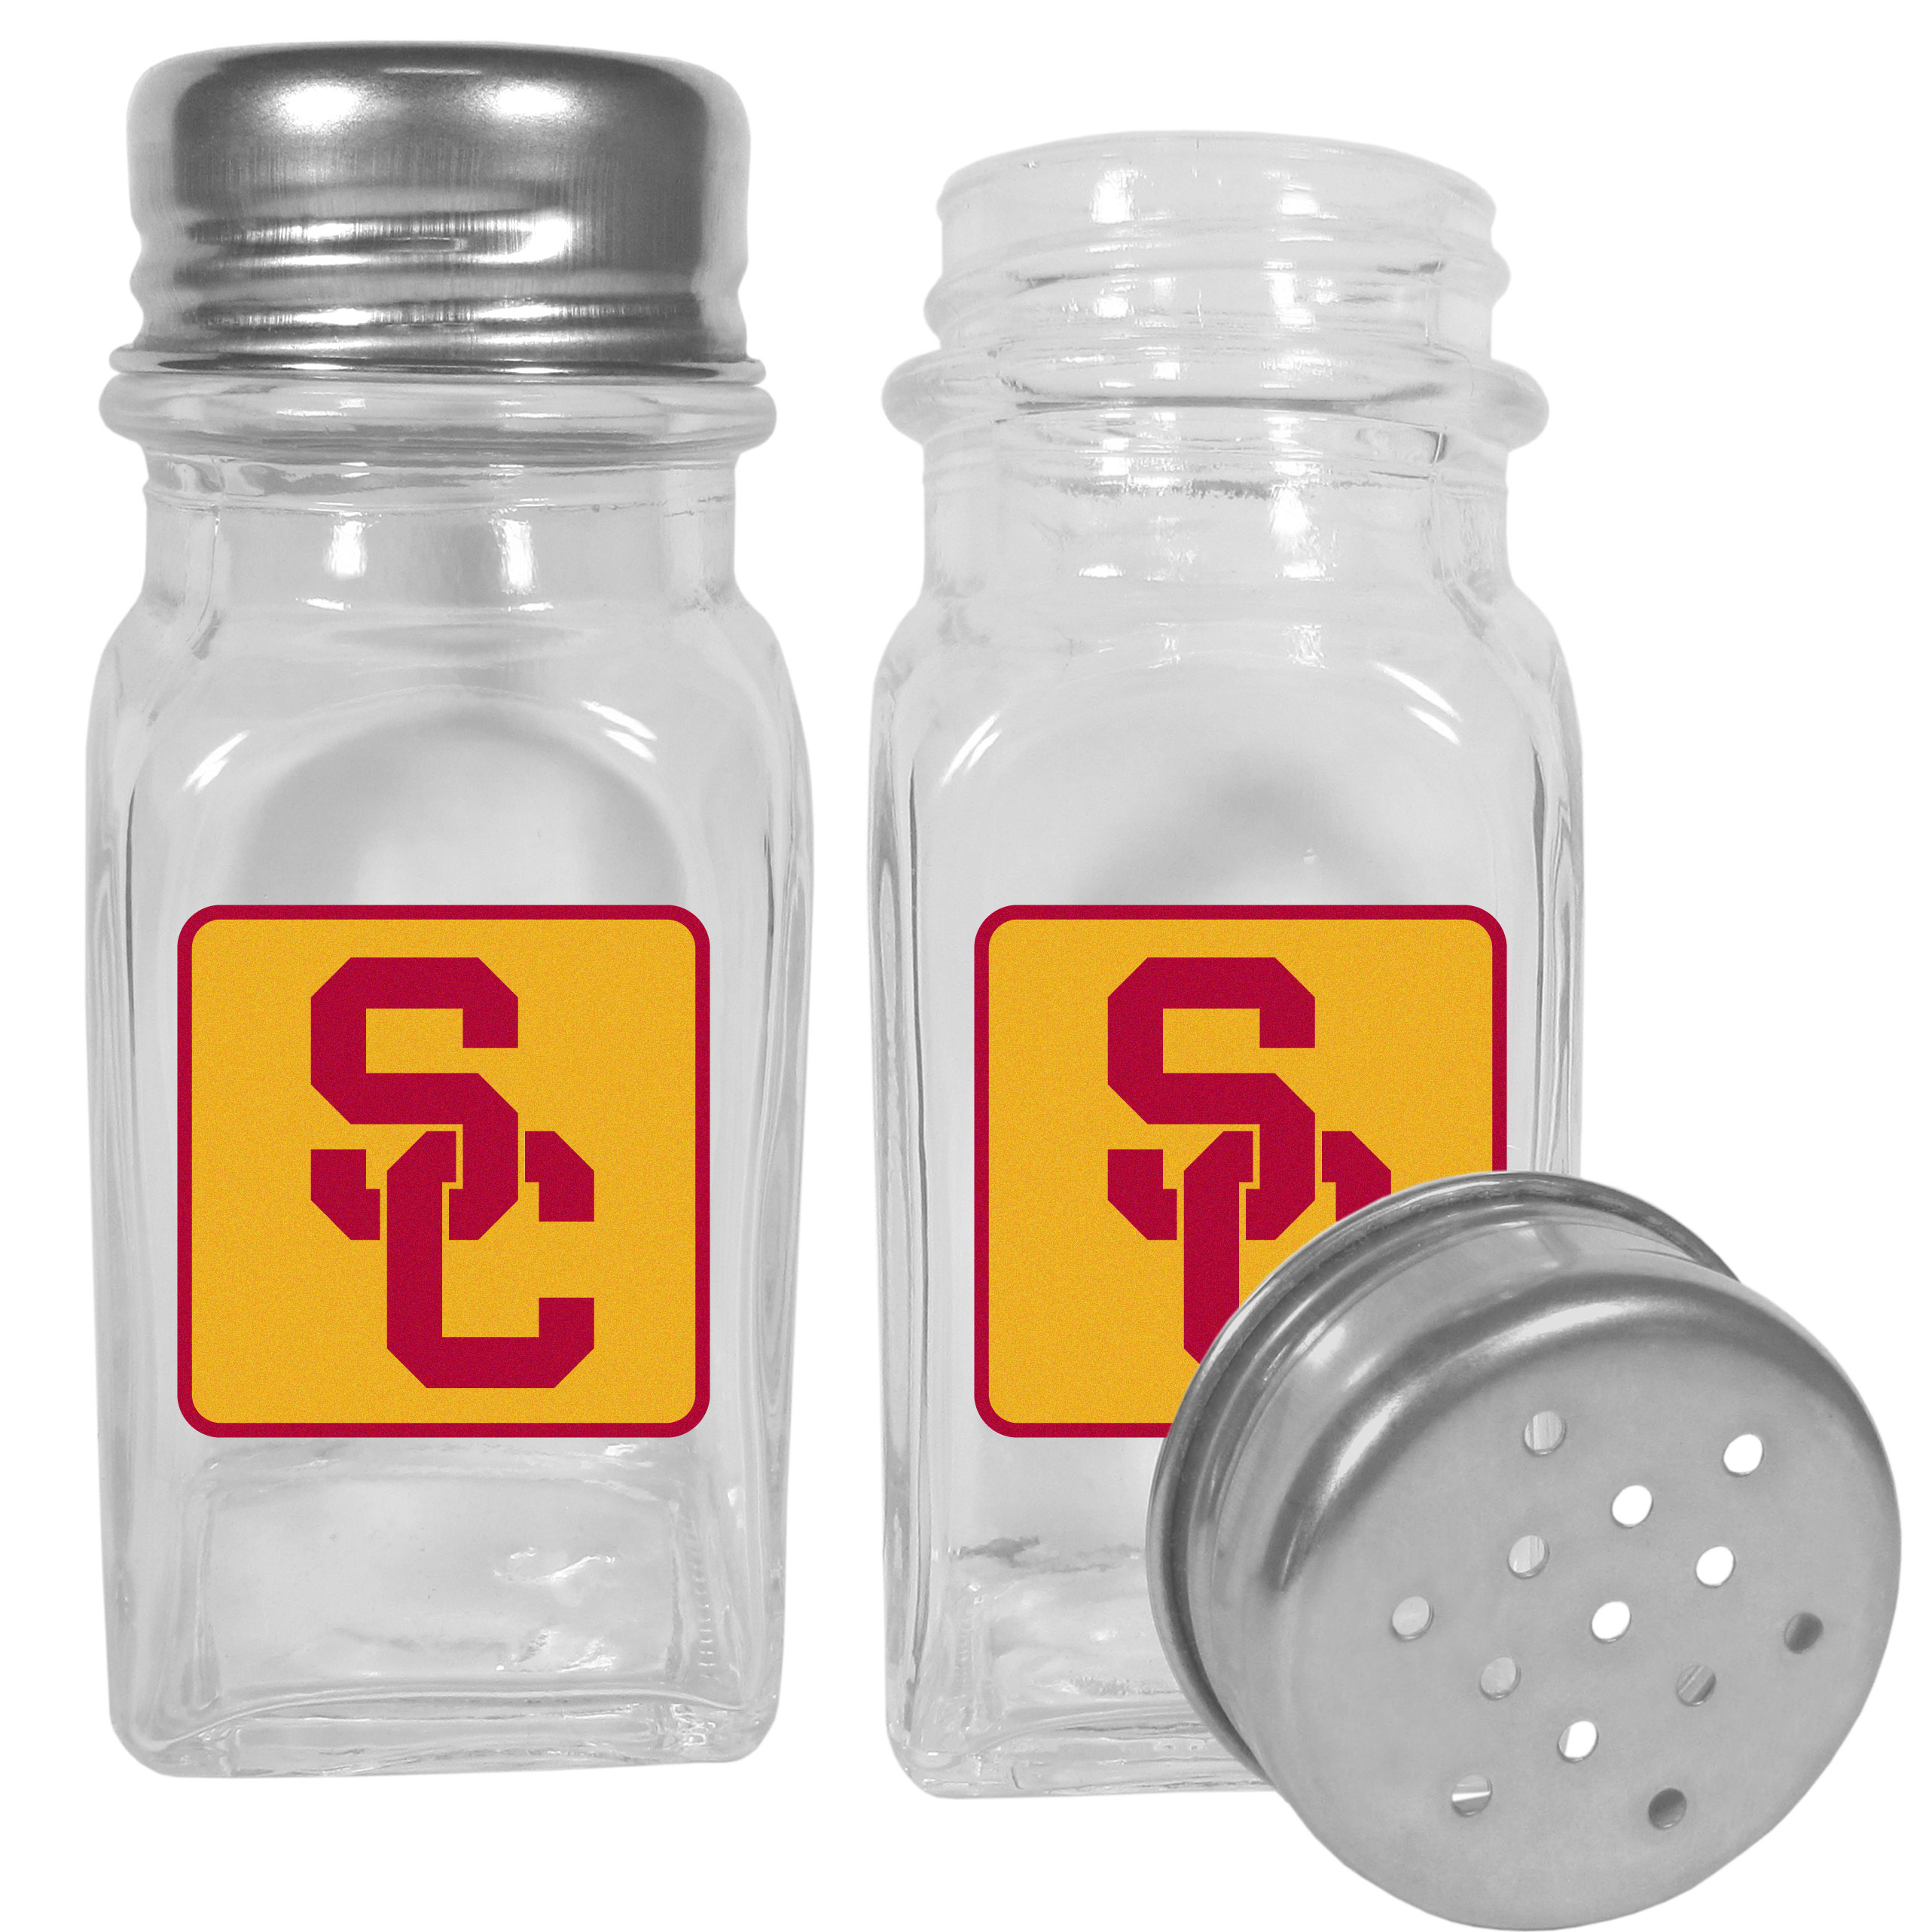 USC Trojans Graphics Salt and Pepper Shaker - No tailgate party is complete without your USC Trojans salt & pepper shakers featuring bright team logos. The diner replica salt and pepper shakers are glass with screw top lids. These team shakers are a great grill accessory whether you are barbecuing on the patio, picnicing or having a game day party.